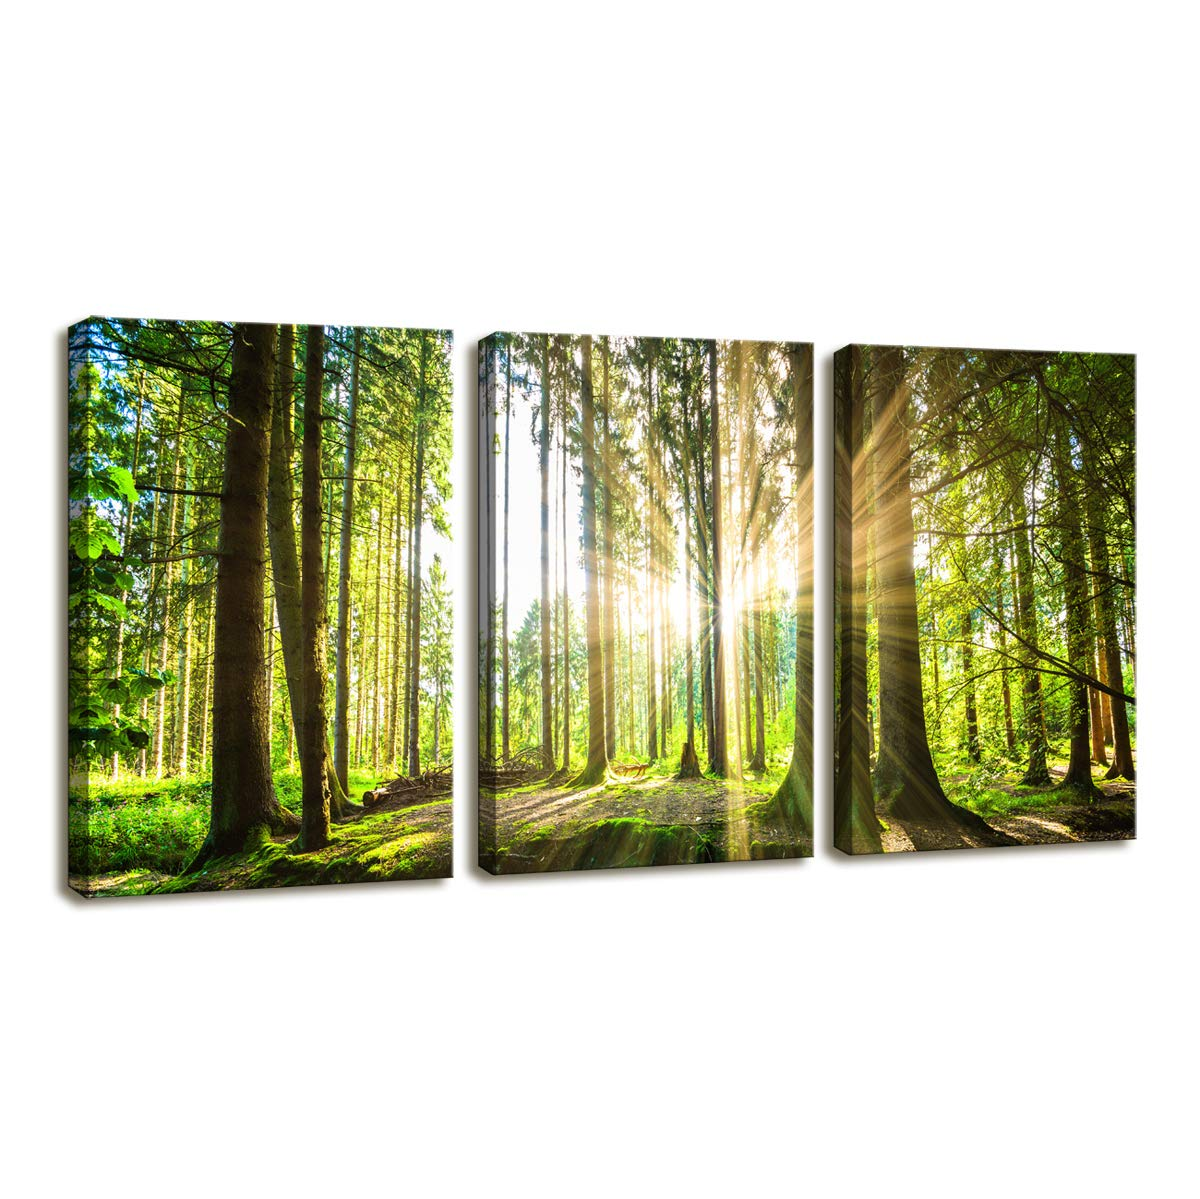 Moyedecor Art 3 Pieces Wall Art Paintings Sunshine In Green Forest Landscape Art Prints On Canvas Decoration Home And Room Wooden Framed Ready To